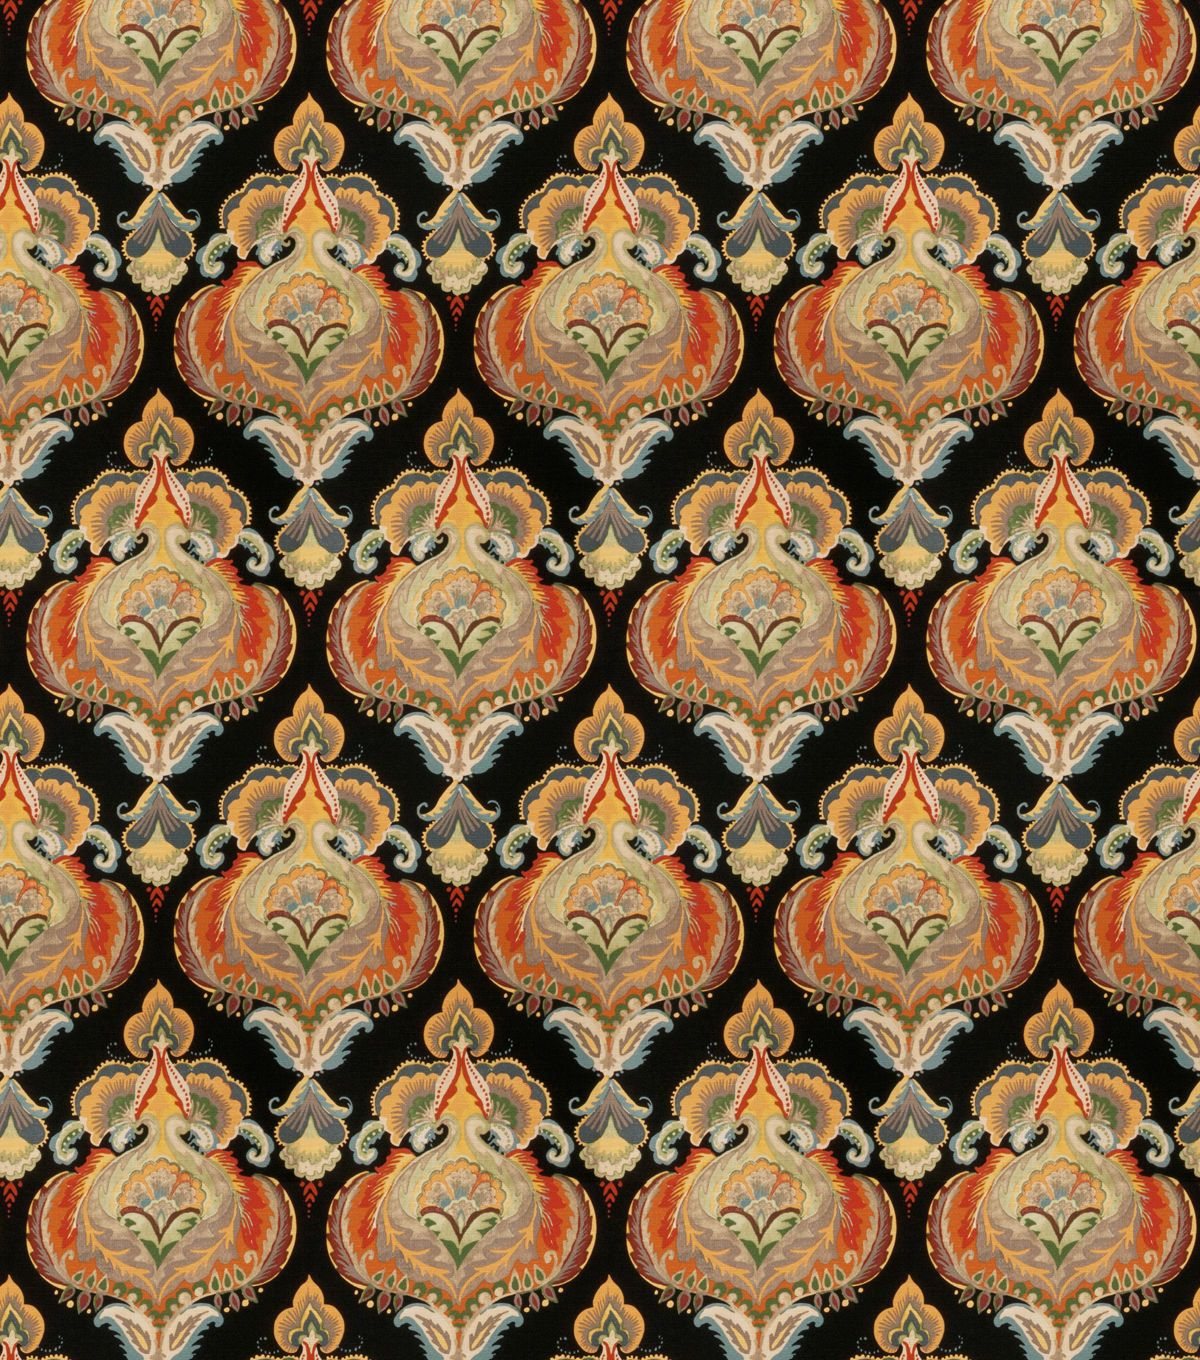 smc designs upholstery fabric conductor black tie upholstery